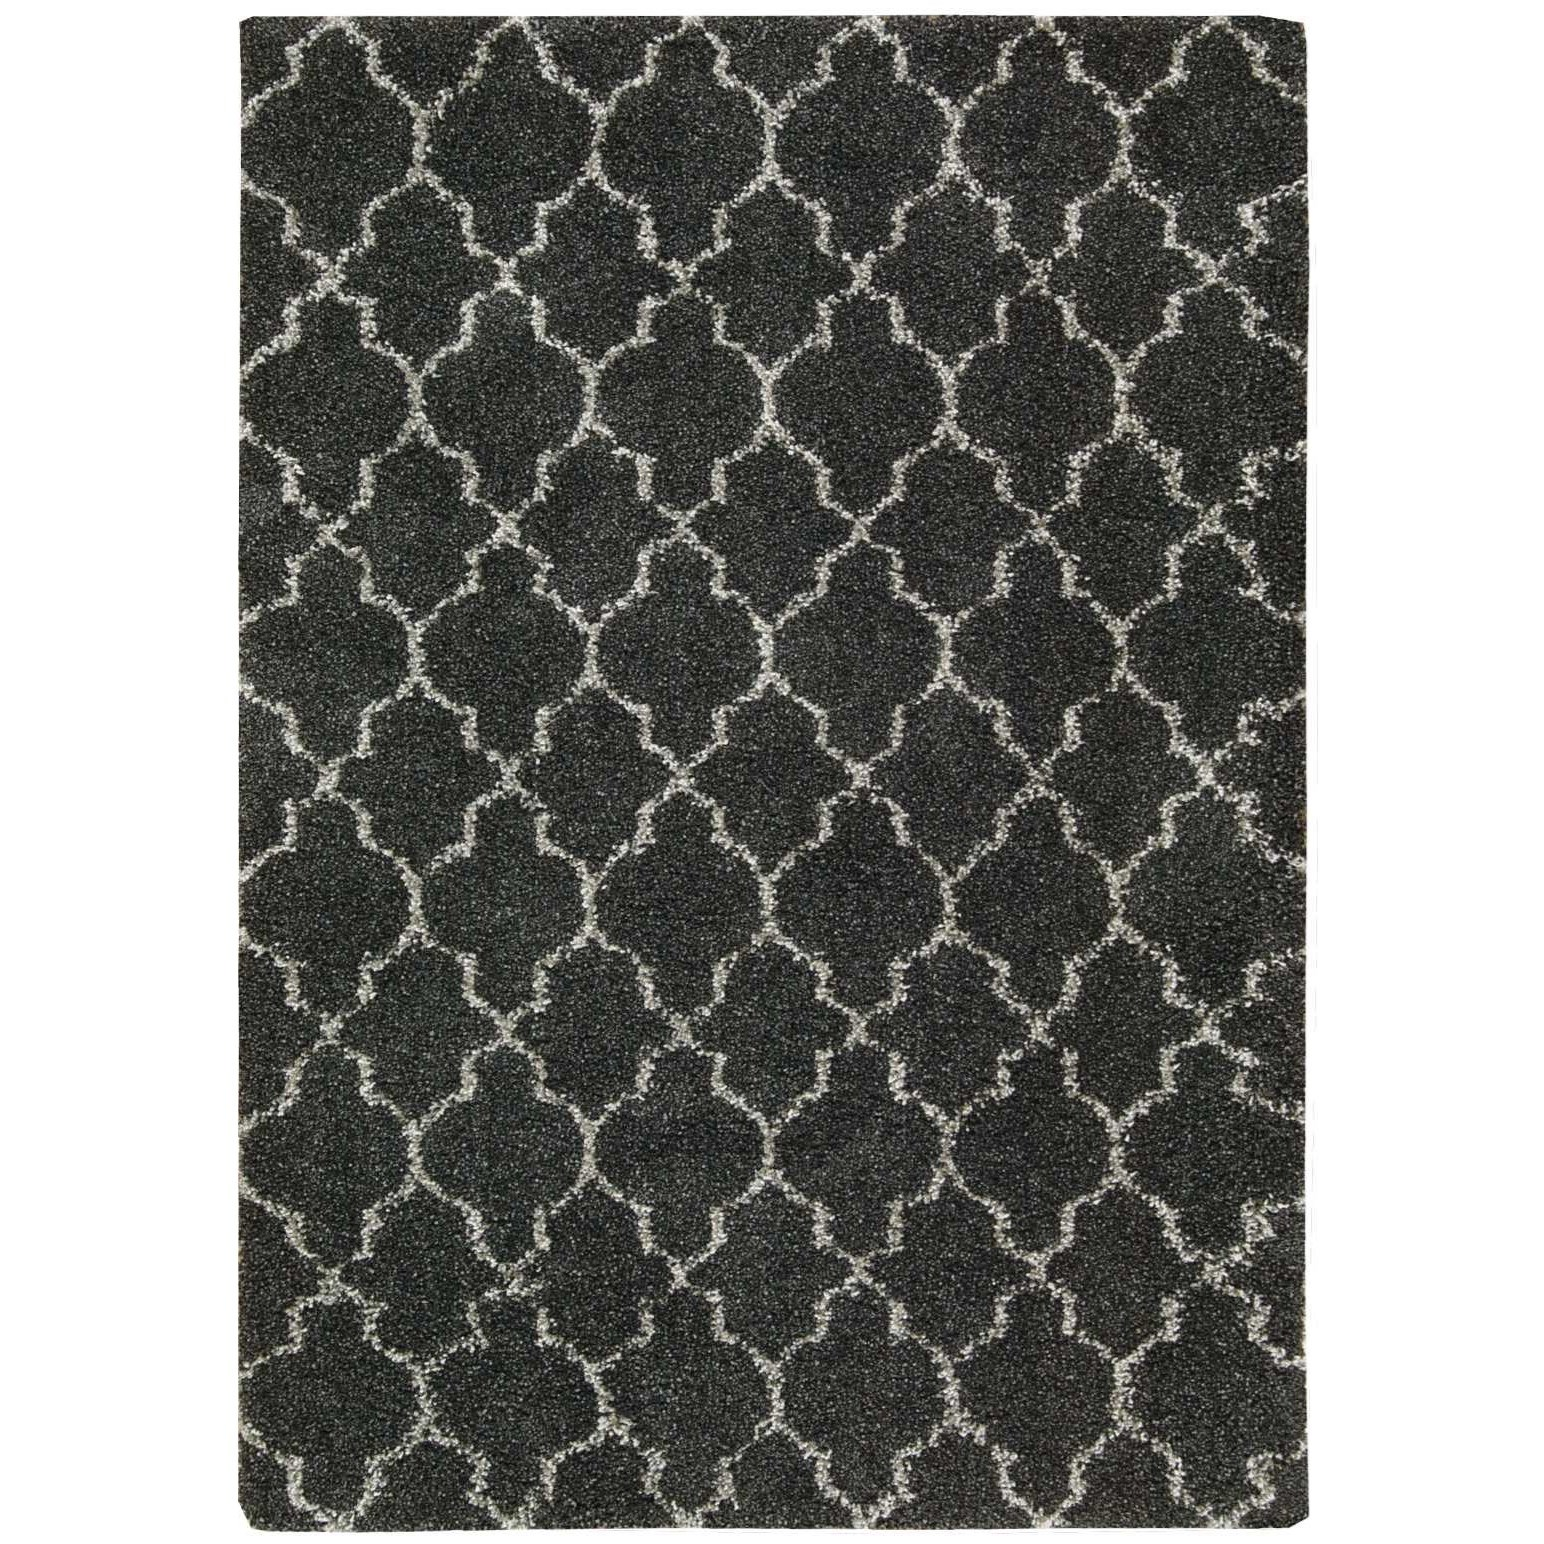 "Amore 3'11"" x 5'11"" Charcoal Rectangle Rug by Nourison at Home Collections Furniture"